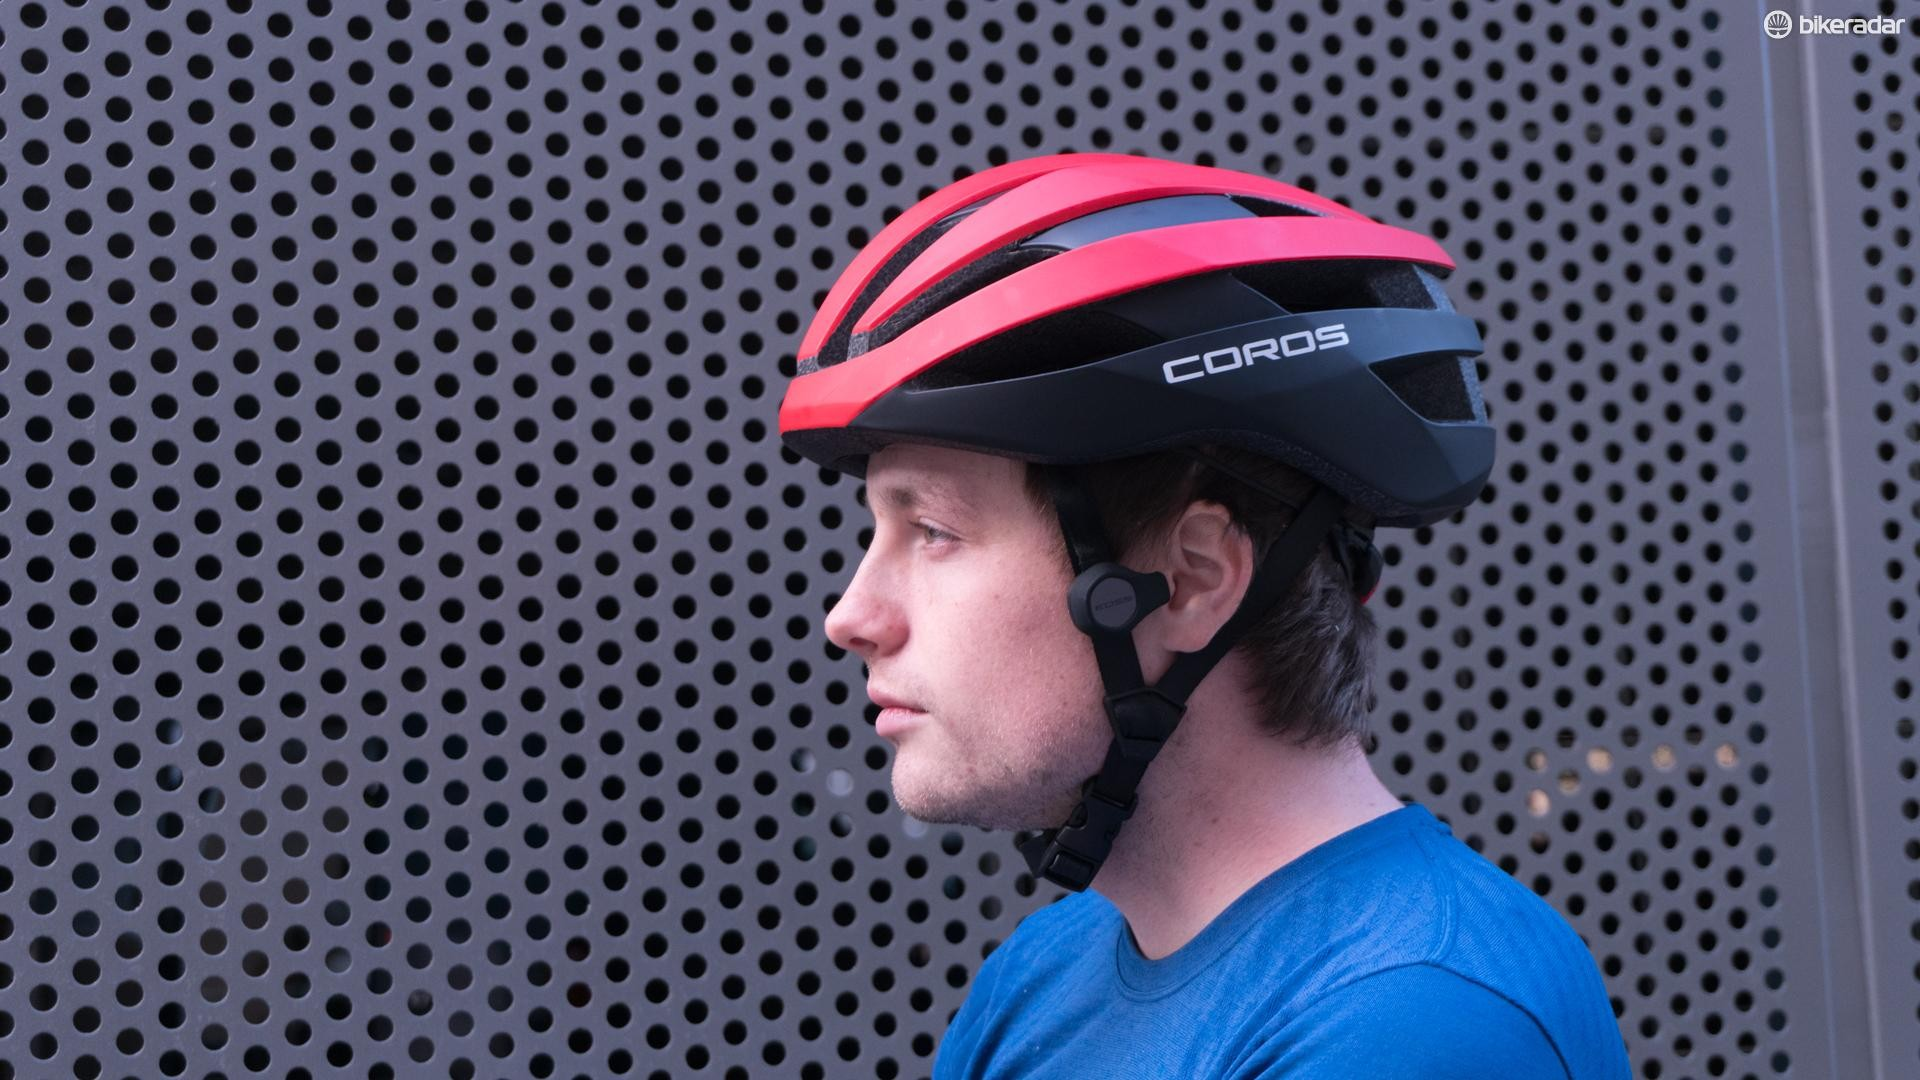 Externally, the Coros SafeSound looks more or less like any other road helmet